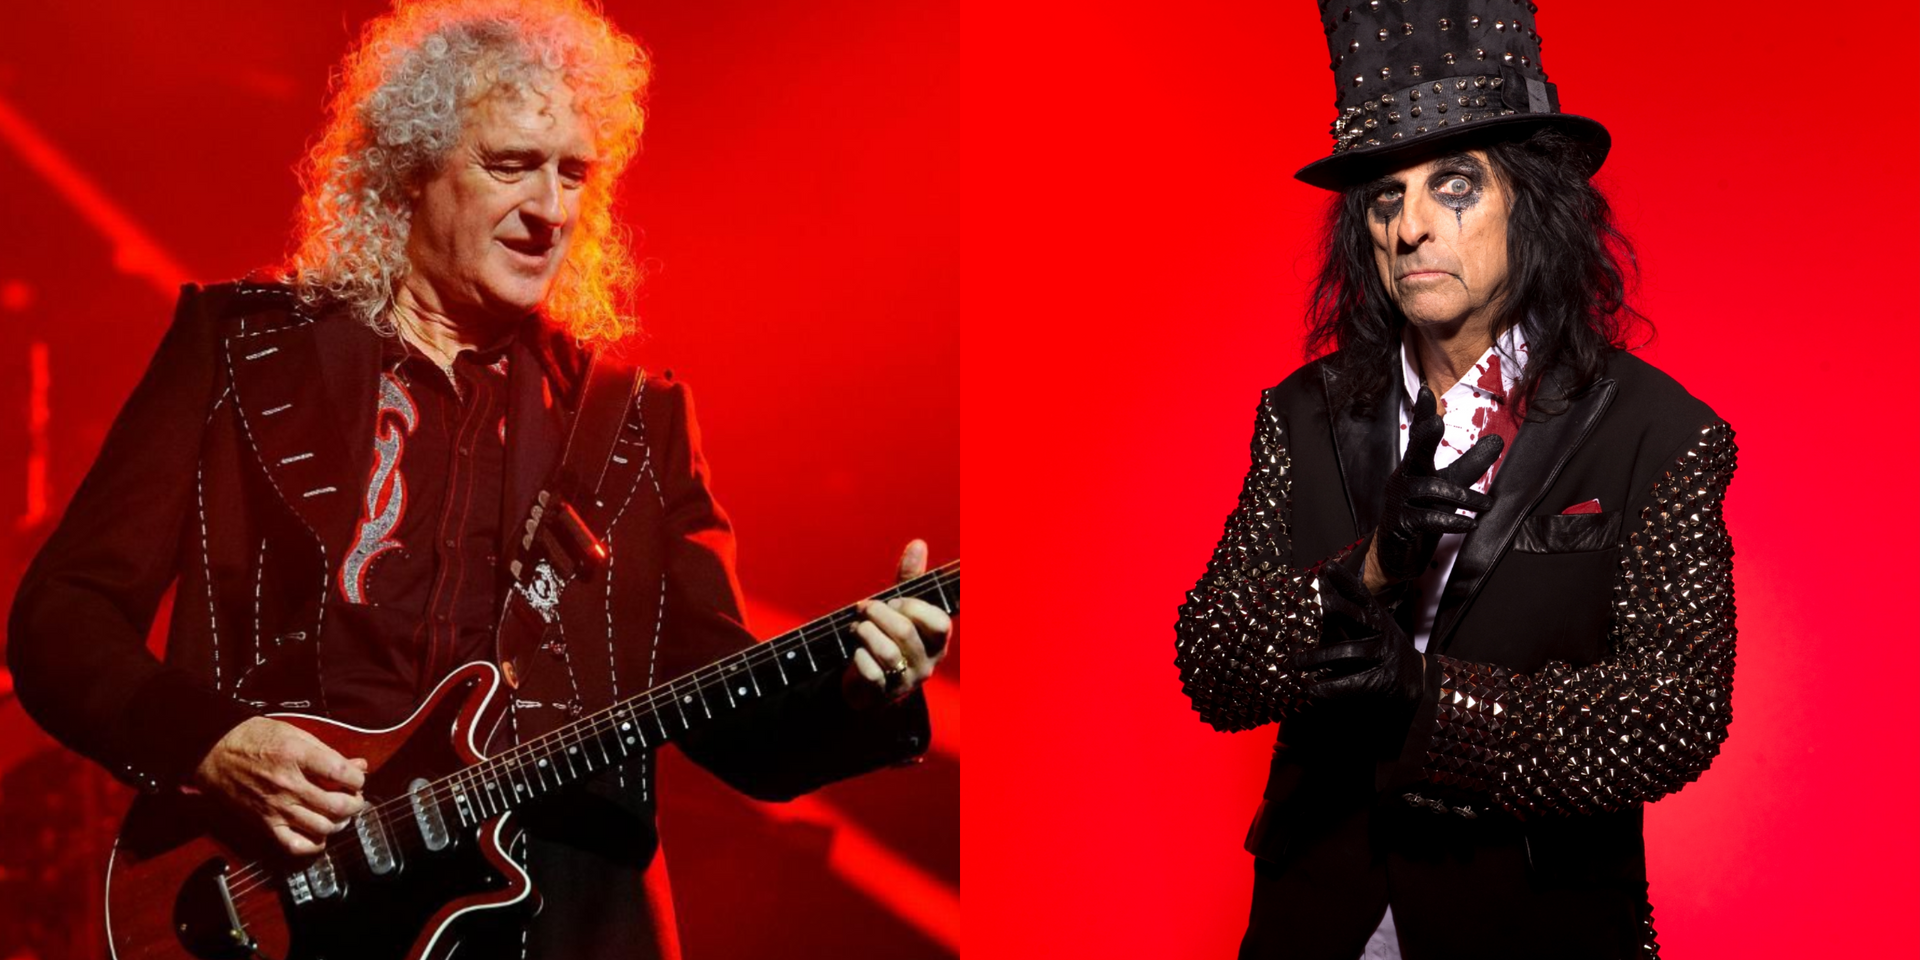 Queen, Alice Cooper and more to perform in Sydney next month for Australian bushfire relief concert